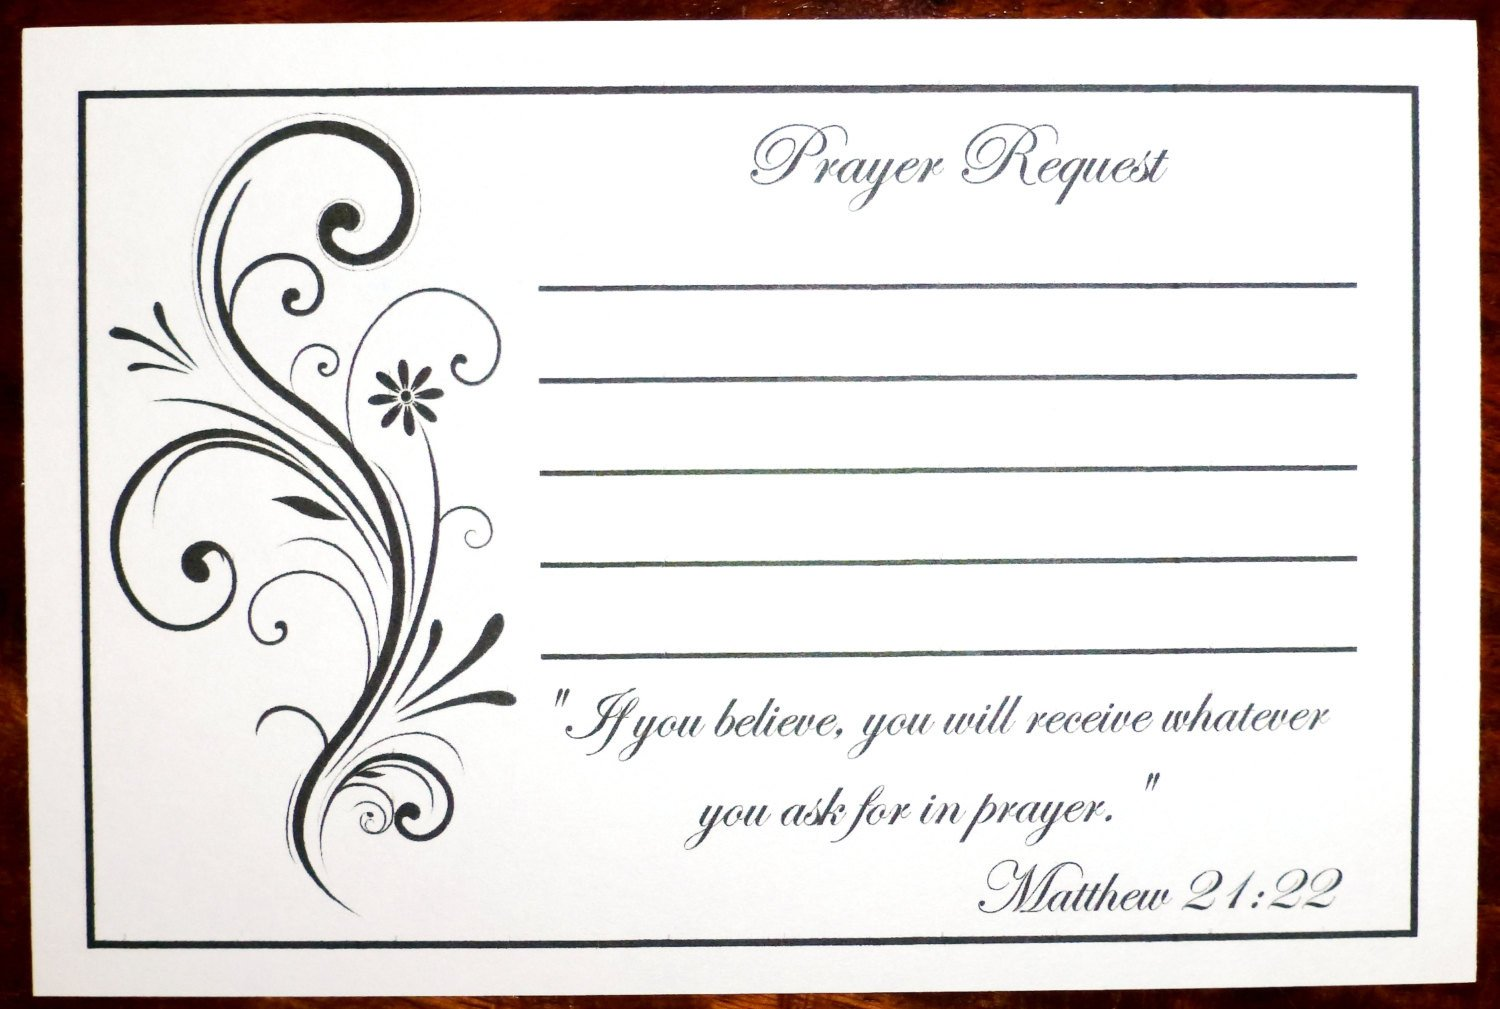 Prayer Request Card Template Pack Of 100 Prayer Request Cards